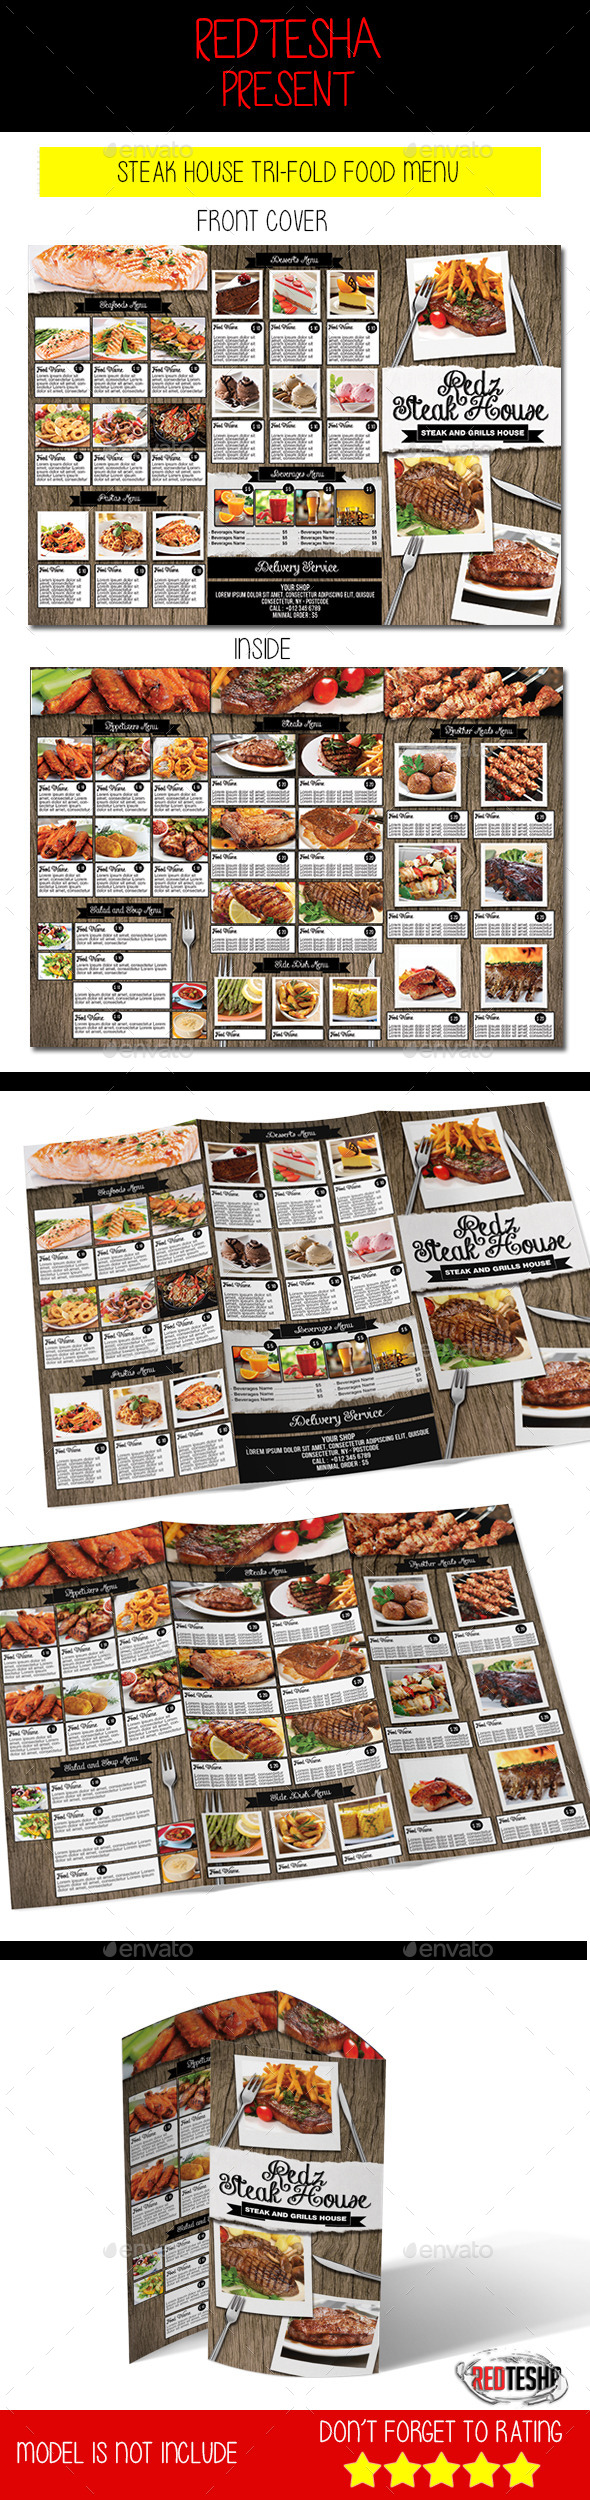 Steak House Tri-fold Menu - Food Menus Print Templates